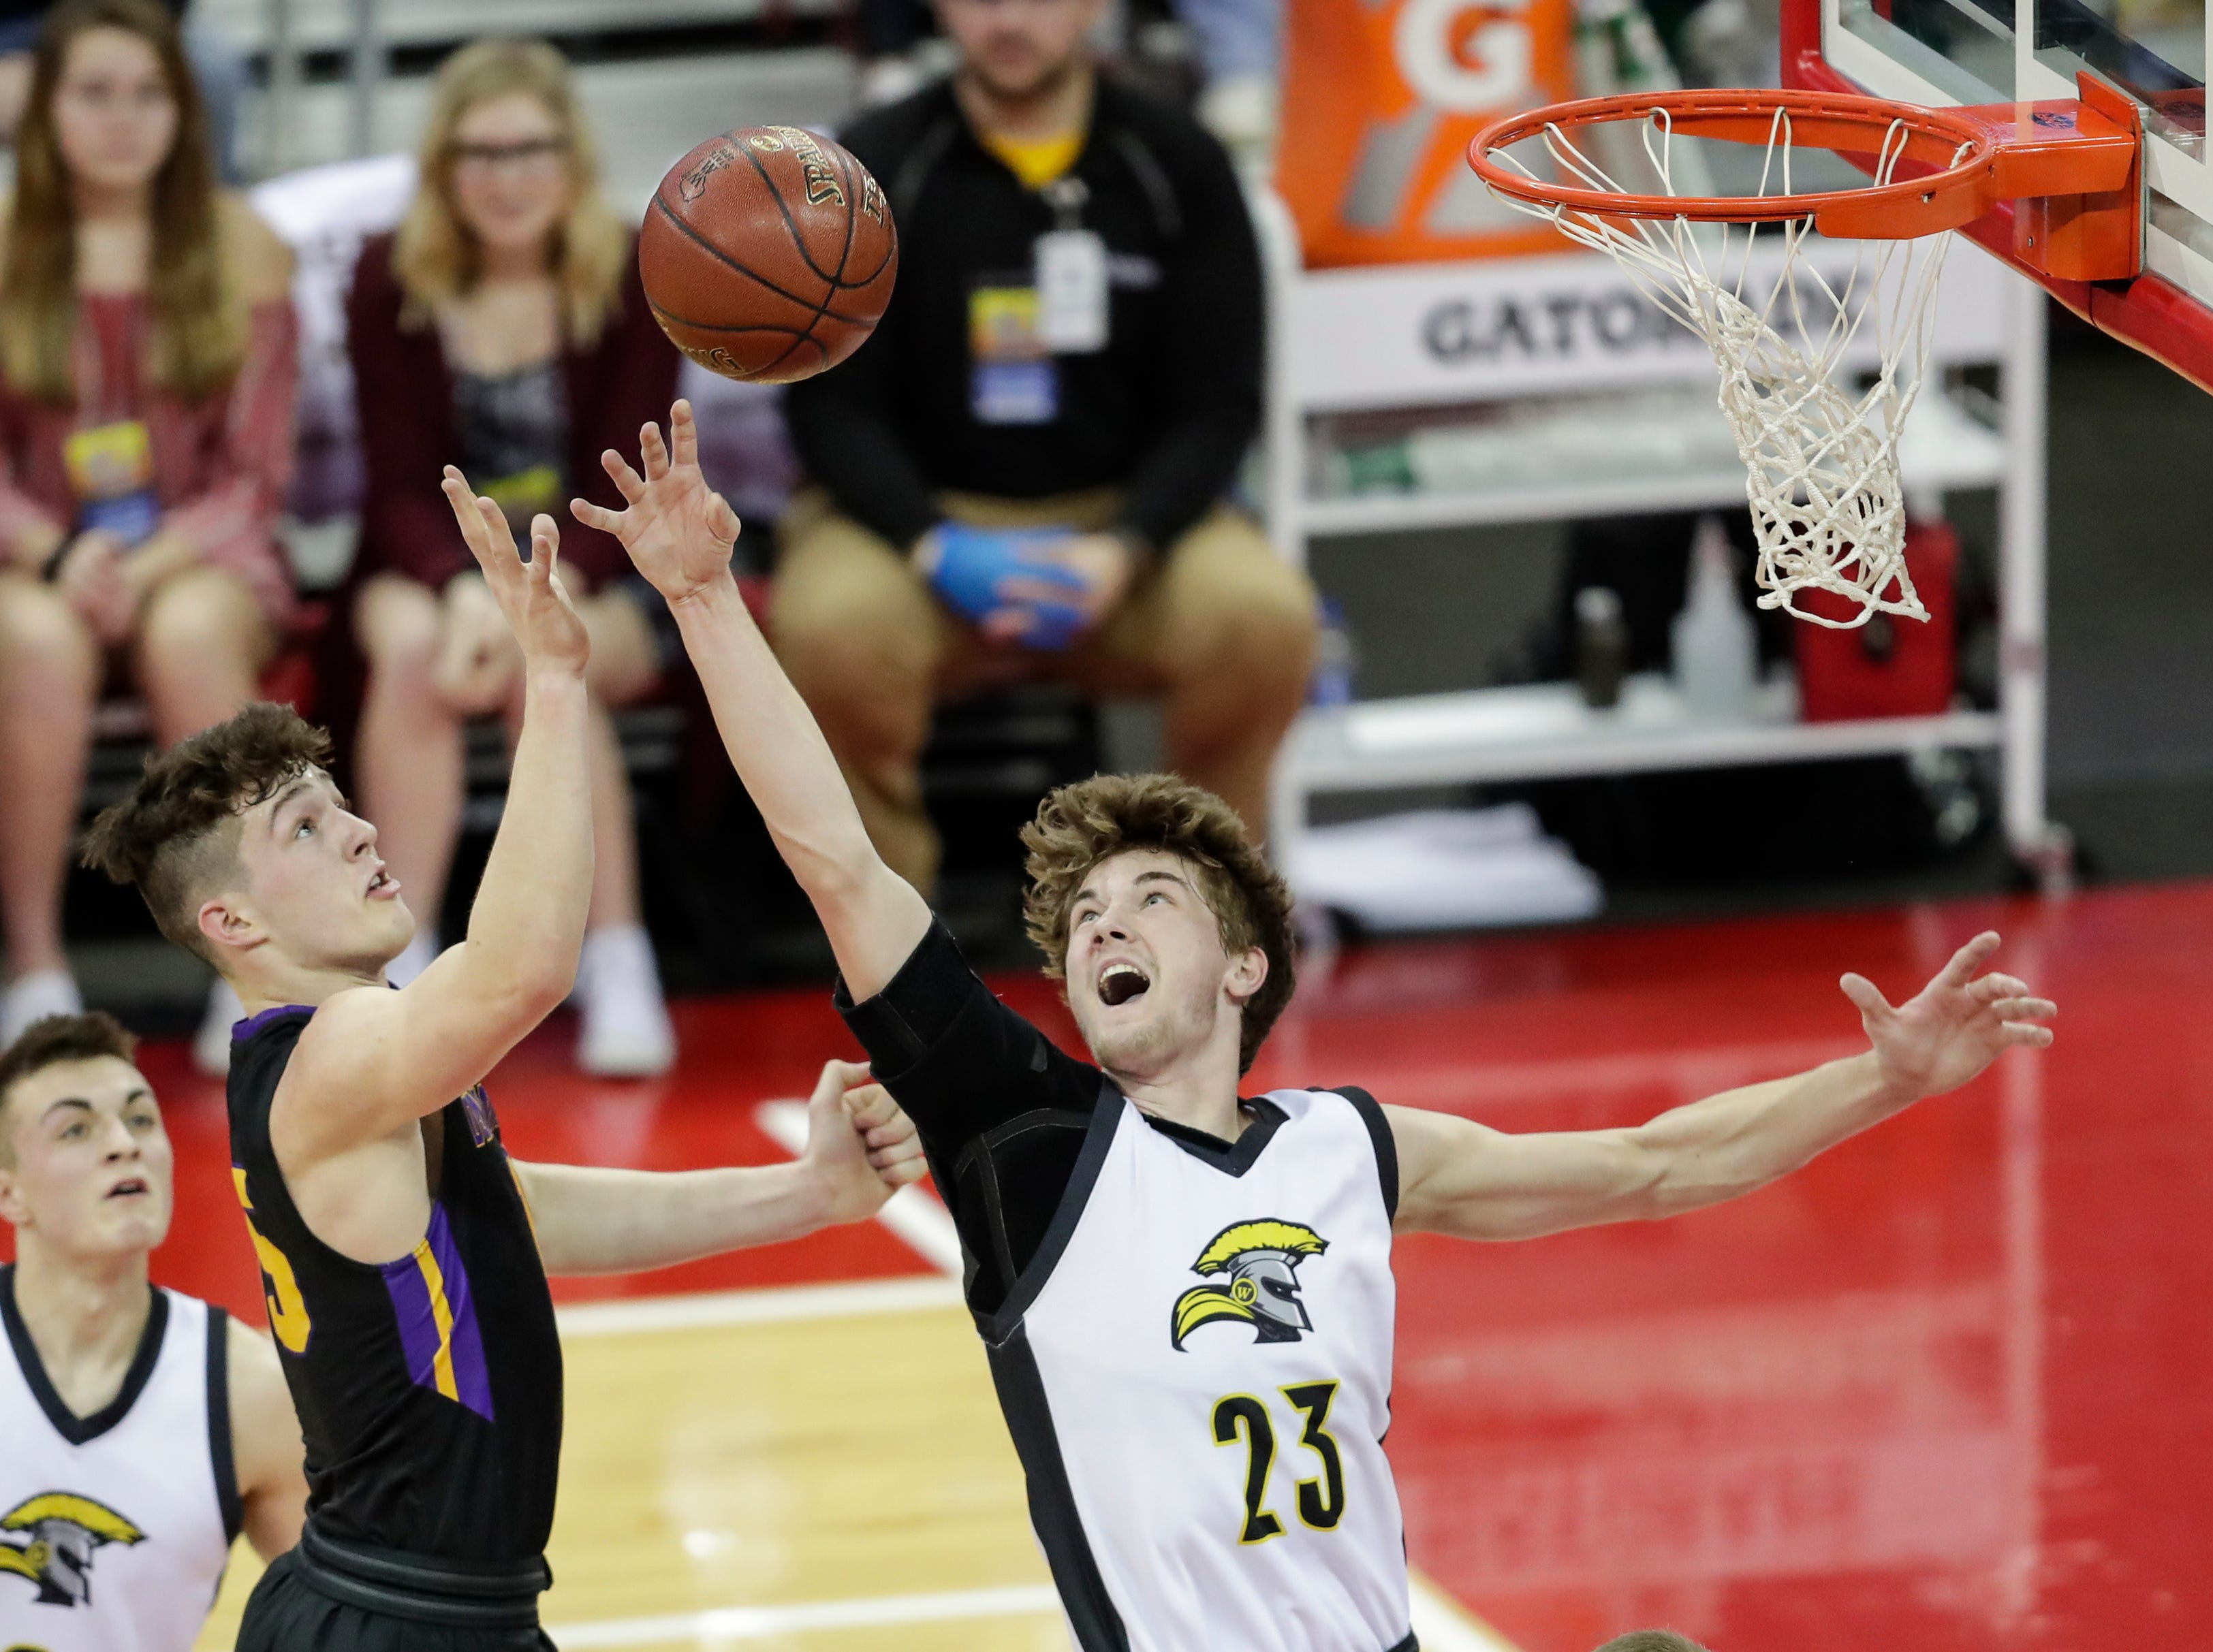 Denmark High School's Zane Short (15) puts up a shot over Waupun High School's Reece Homan (23) during their WIAA Division 3 boys basketball state semifinal at the Kohl Center Thursday, March 14, 2019, in Madison, Wis.